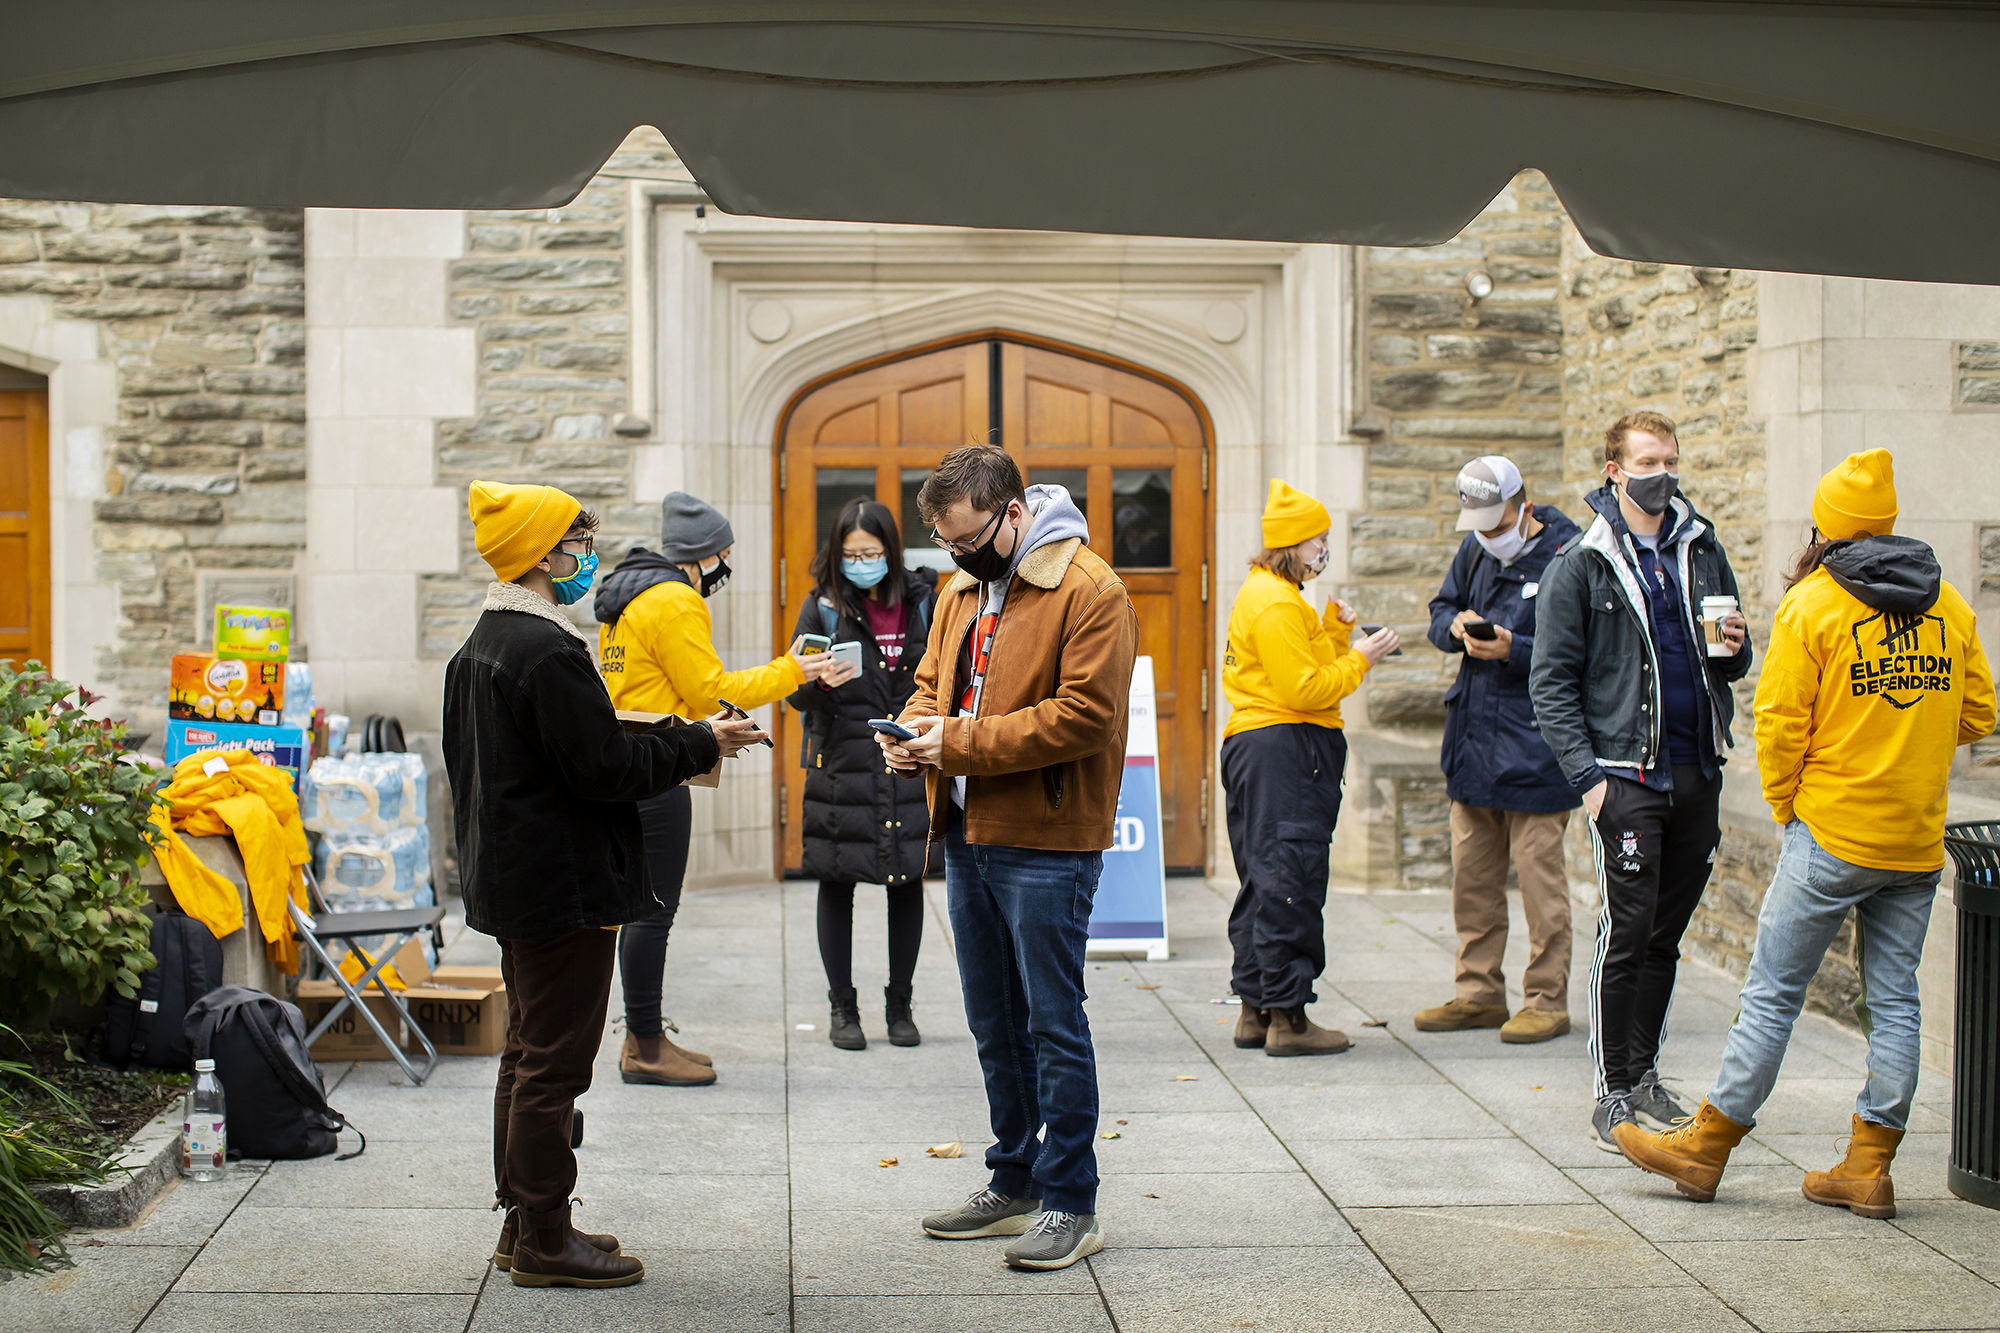 students prepare to vote outside a polling place on campus